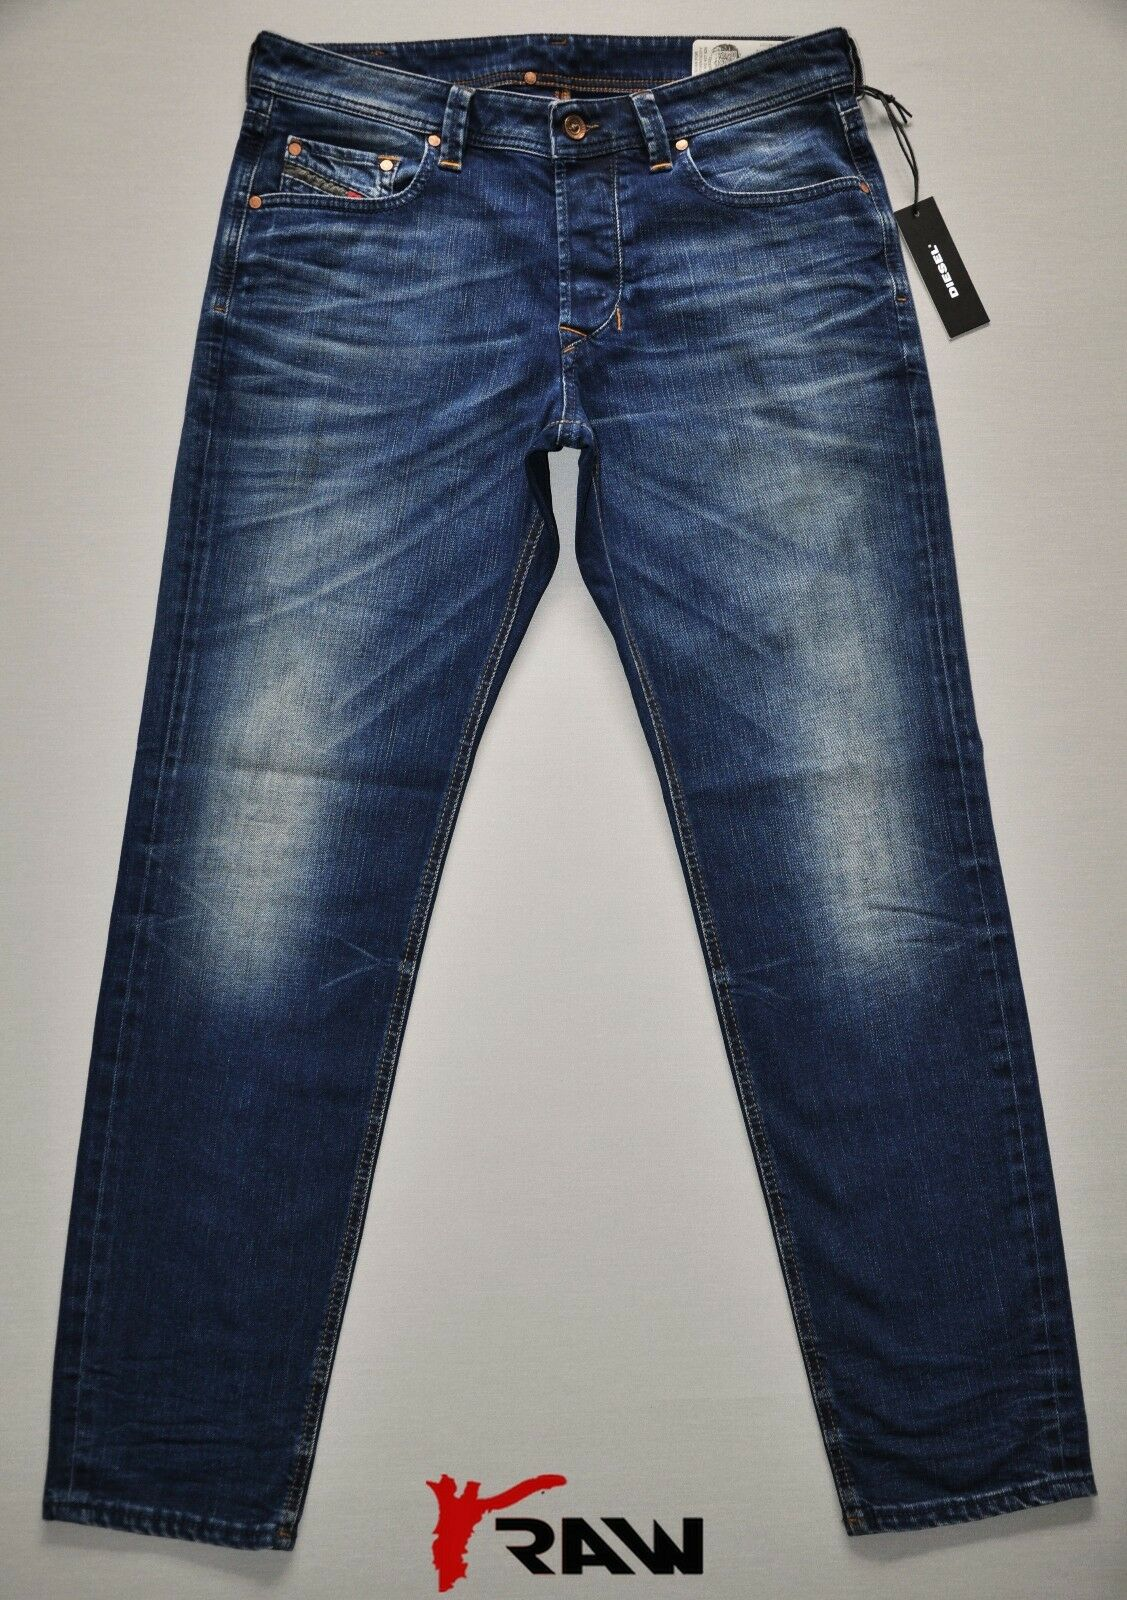 DIESEL LARKEE BEEX 084DR TAPERED NEW MAN   MENS JEANS STRETCH DARK blueE SIZES BN